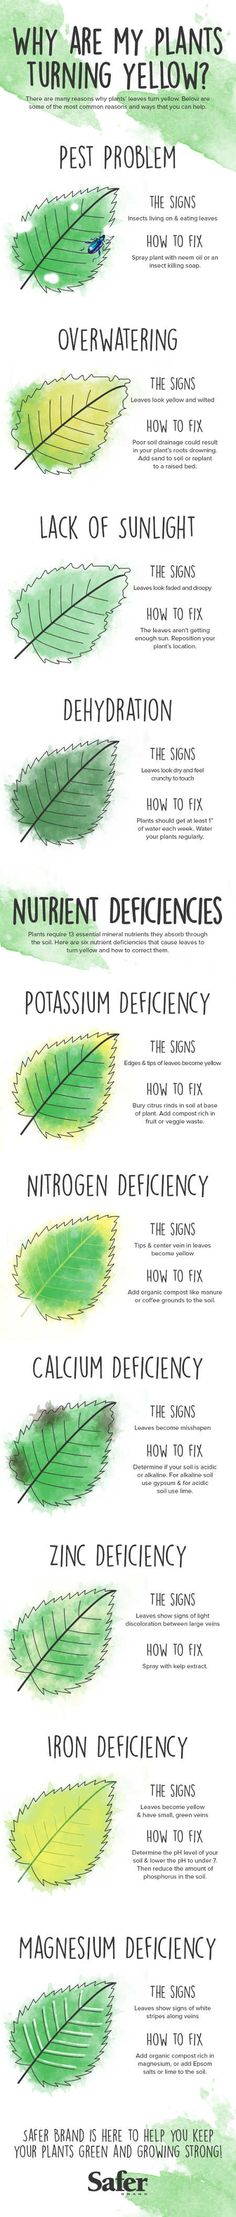 Do you wonder why your plants turn color? For example, why your plant's leafs turn yellow, have white coloration etc. But luckily there is a helpful guide to help you determine what is causing it and what can you do to fix it. Check out the graph below to understand your plants better. Hope this …